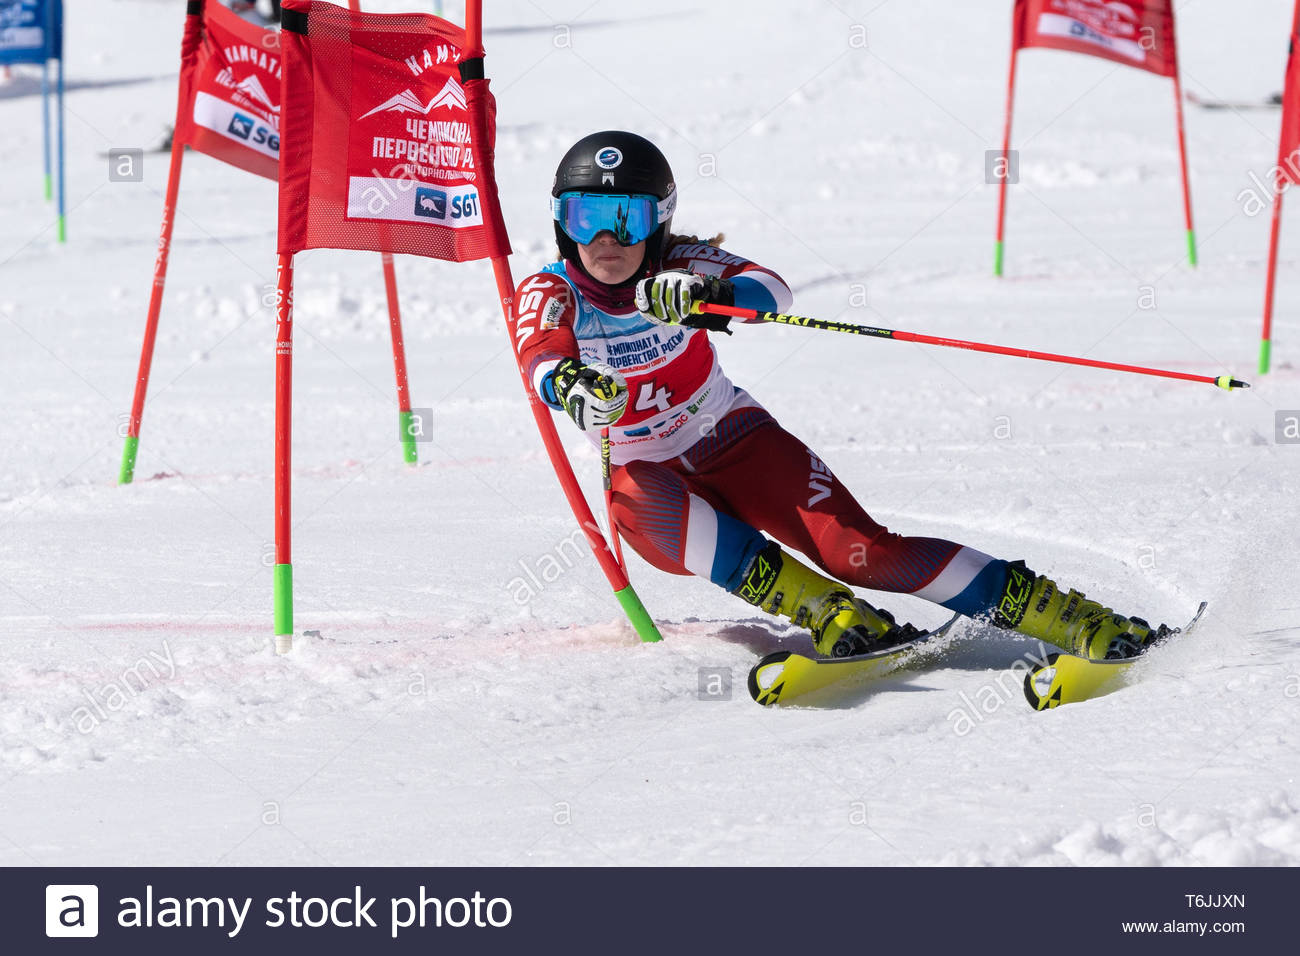 MOROZNAYA MOUNT, KAMCHATKA PENINSULA, RUSSIAN FEDERATION - MAR 30, 2019: Russian Federation Alpine Skiing Championship parallel slalom. Mountain skier - Stock Image